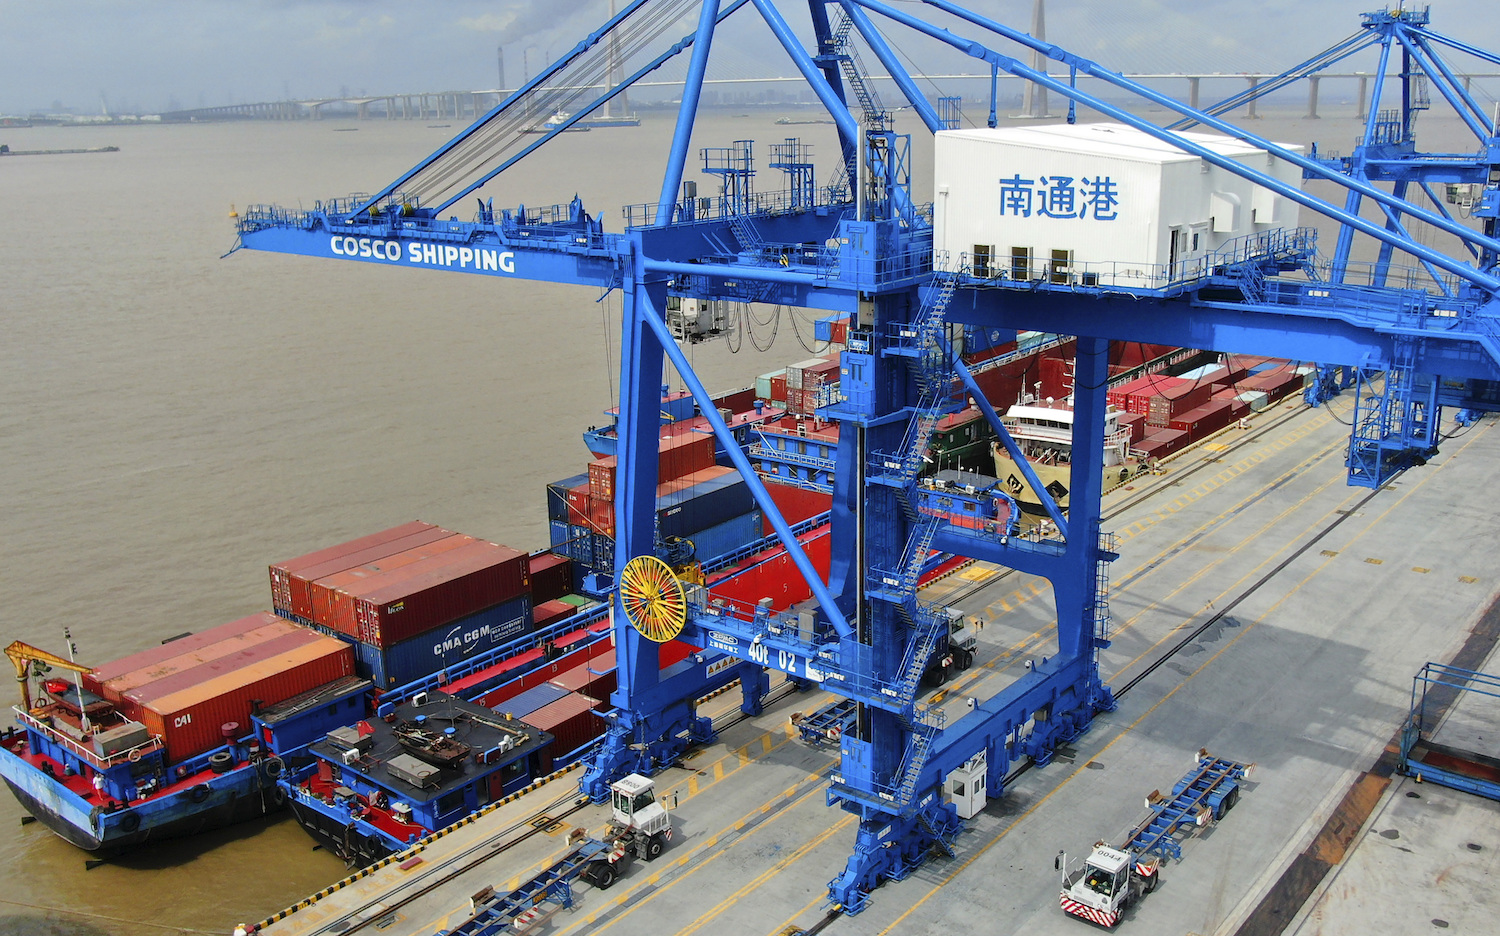 Shipping containers are loaded onto a cargo ship at a port in Nantong in eastern China. (AP photo)